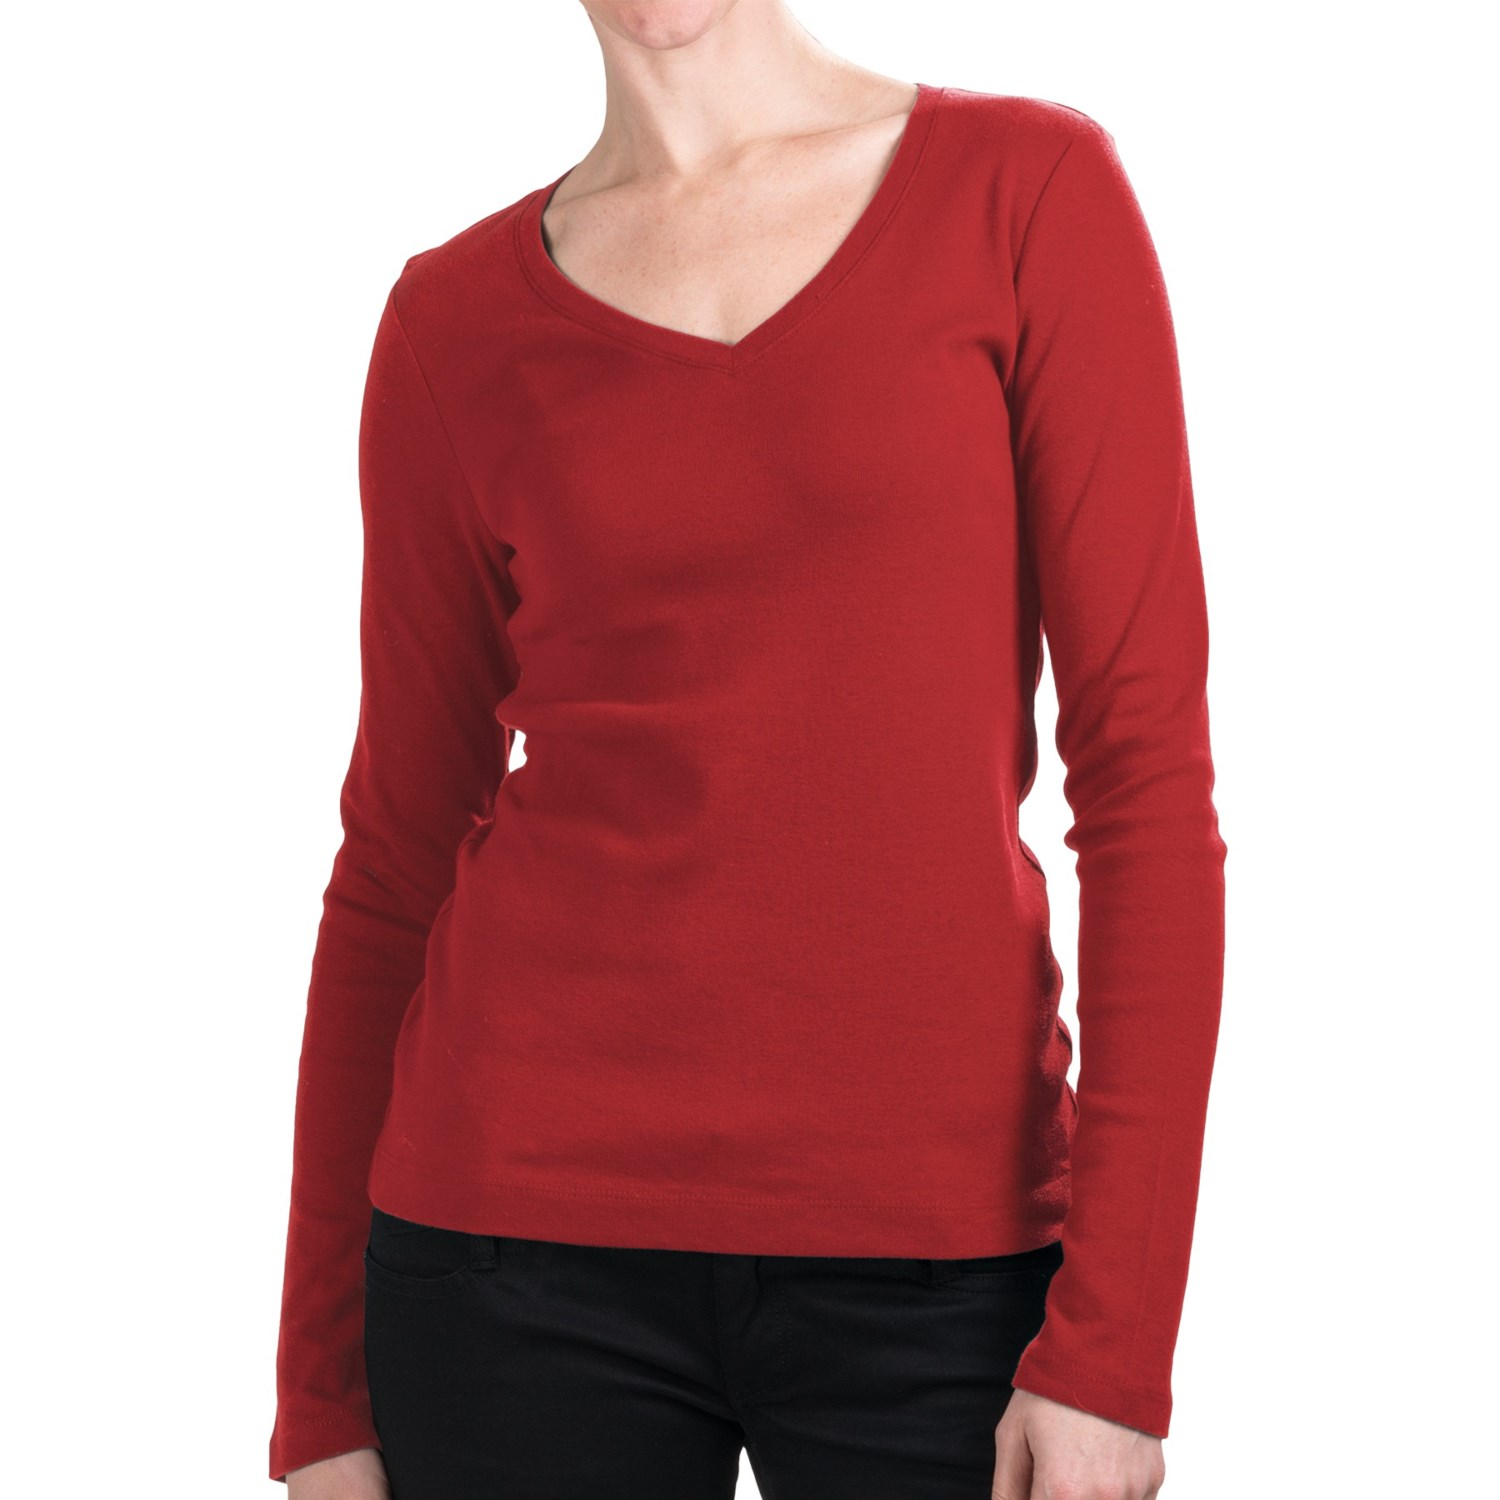 Cotton jersey t shirt v neck long sleeve for women for Cotton long sleeve v neck t shirts